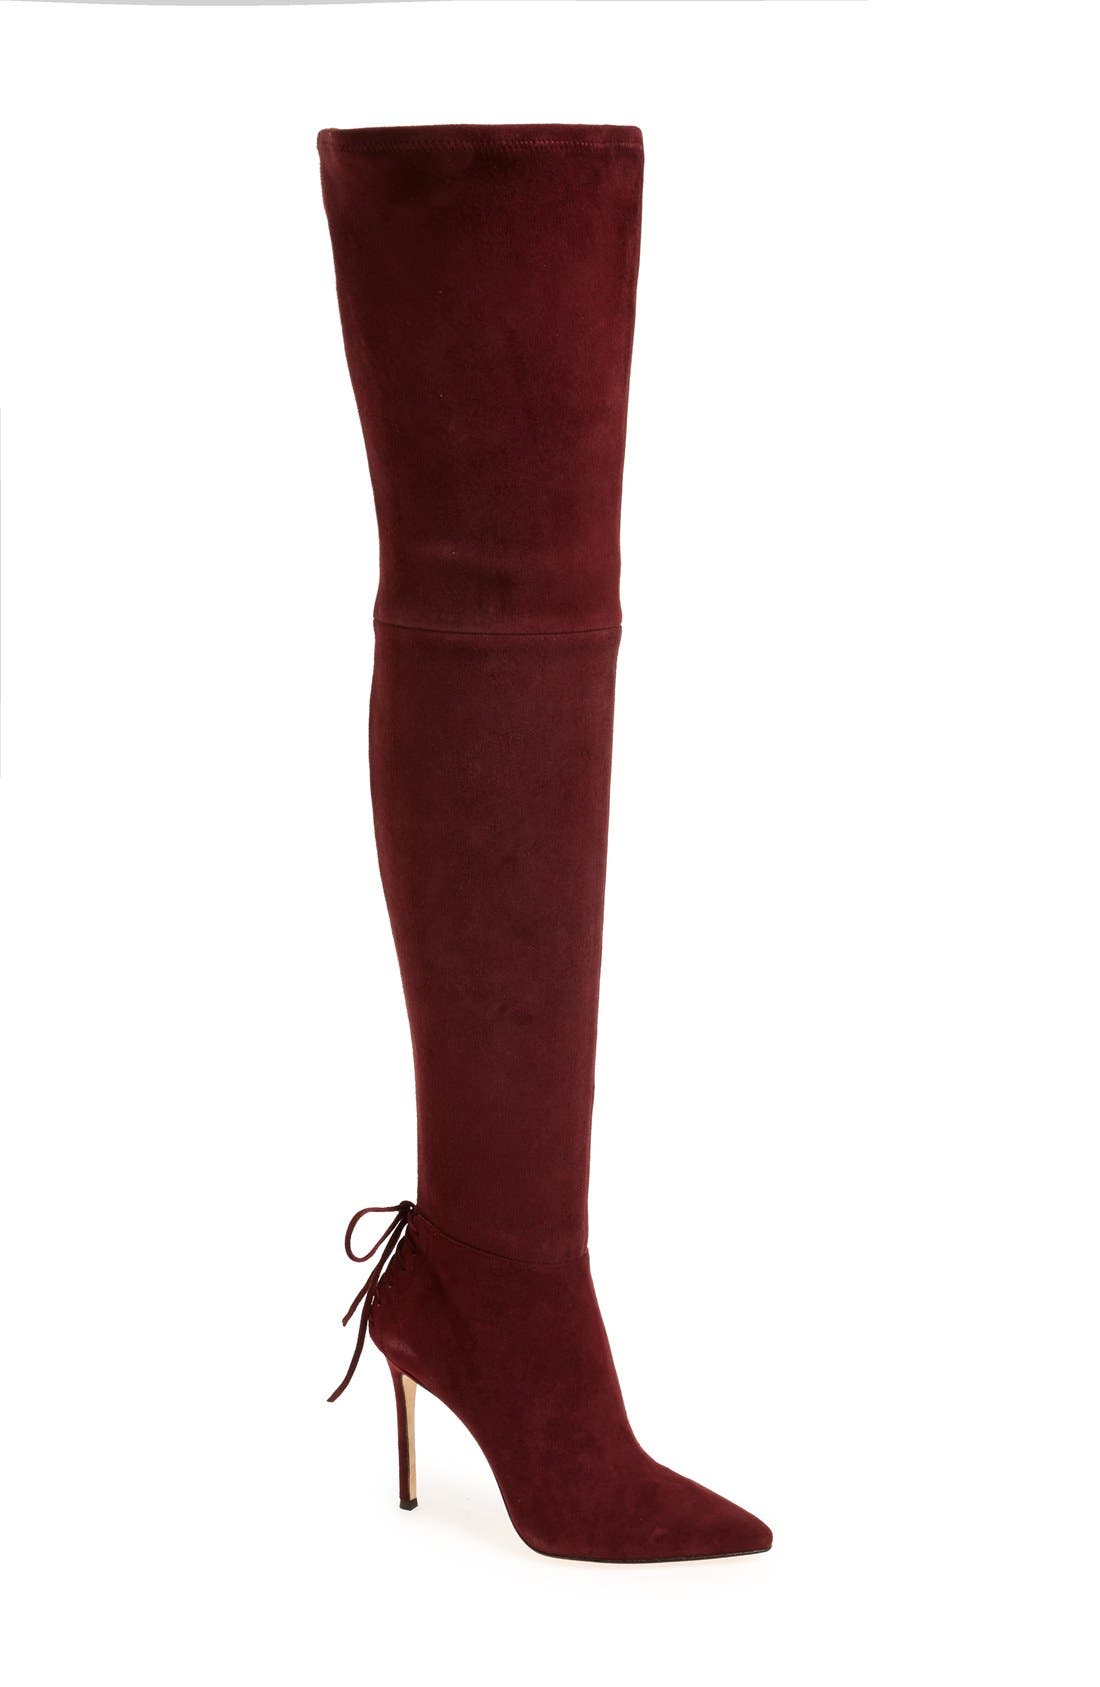 Alternate Image 1 Selected - Pour la Victoire 'Caterina' Over the Knee Boot (Women)